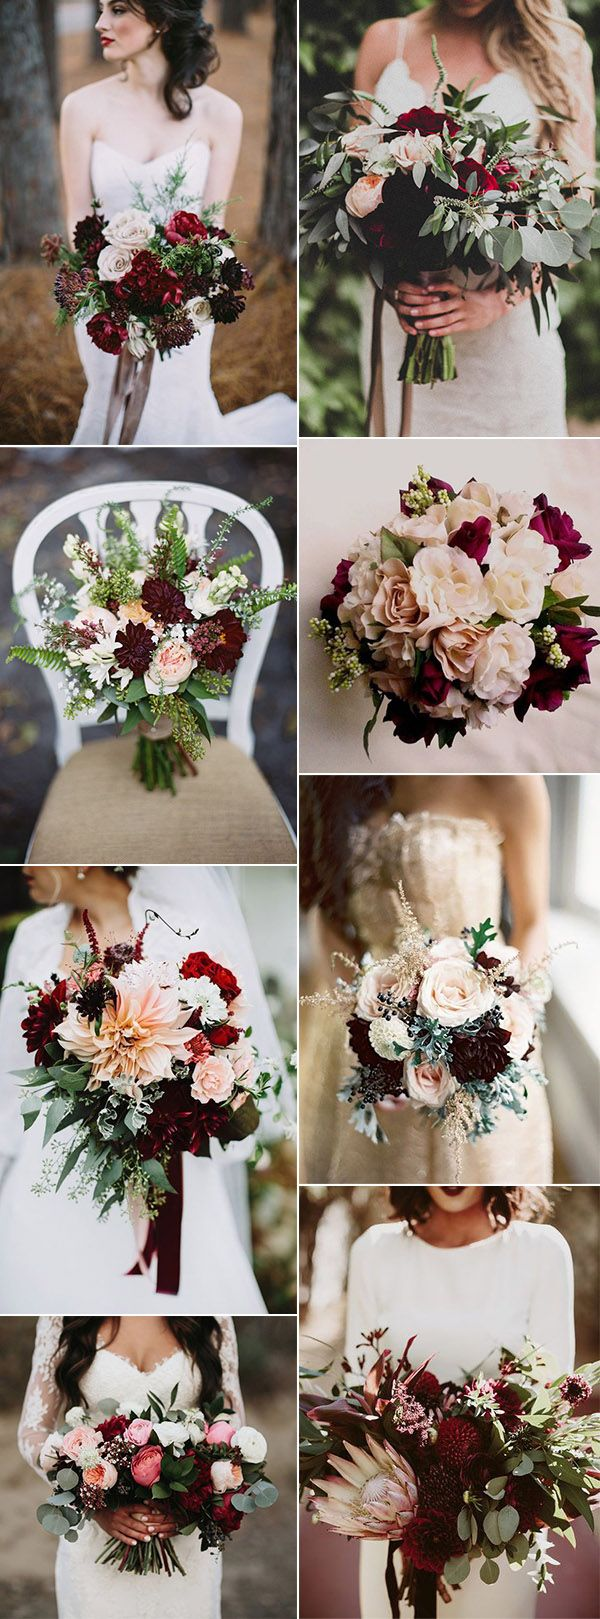 50 refined burgundy and marsala wedding color ideas for fall brides stunning burgundy bridal flower bouquets for all seasons izmirmasajfo